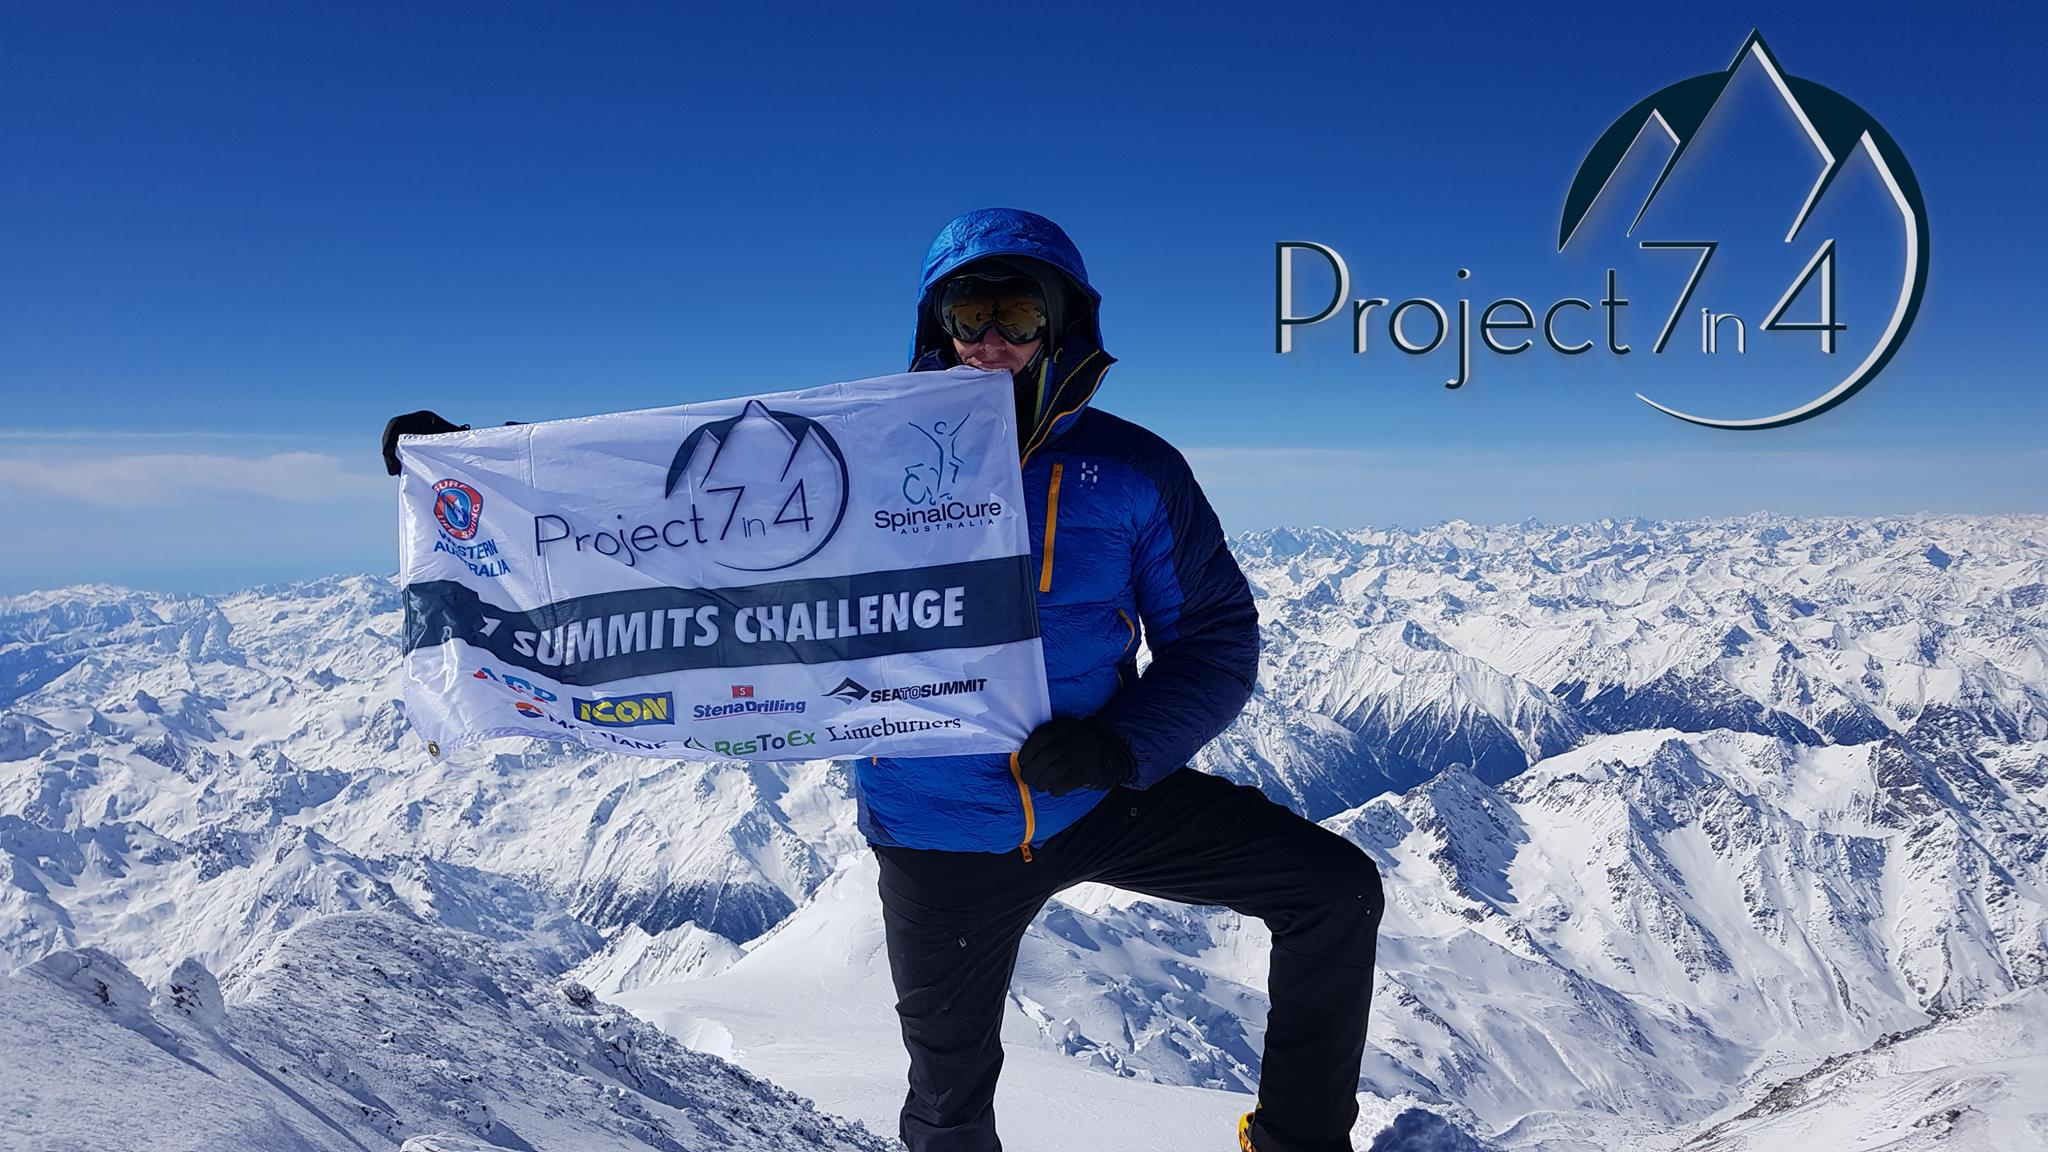 Project 7in4 Steve Plain world record attempt - summit of Elbrus